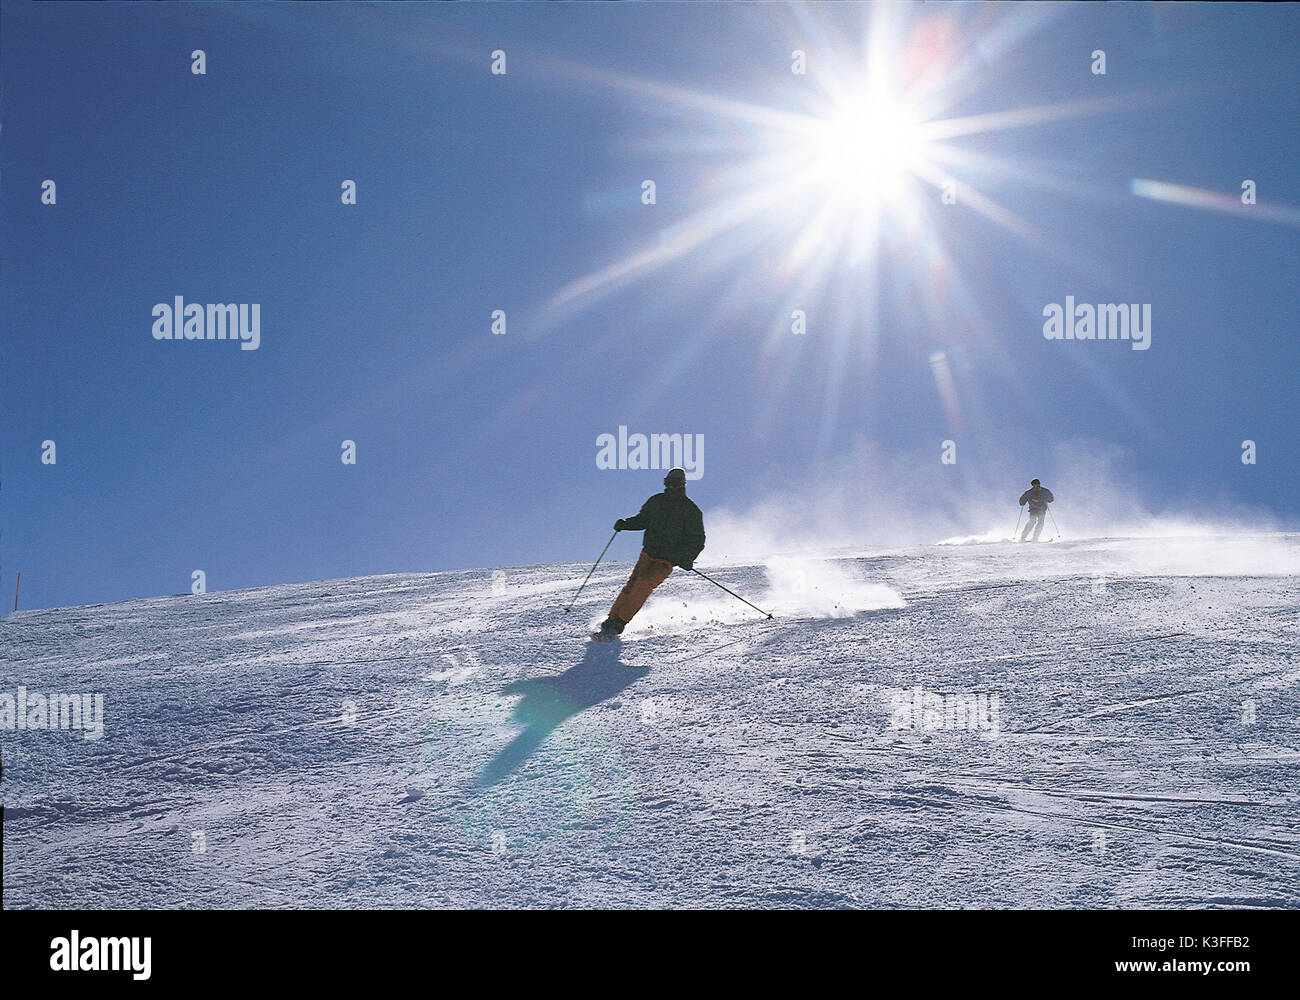 Skier drives downhill - Stock Image